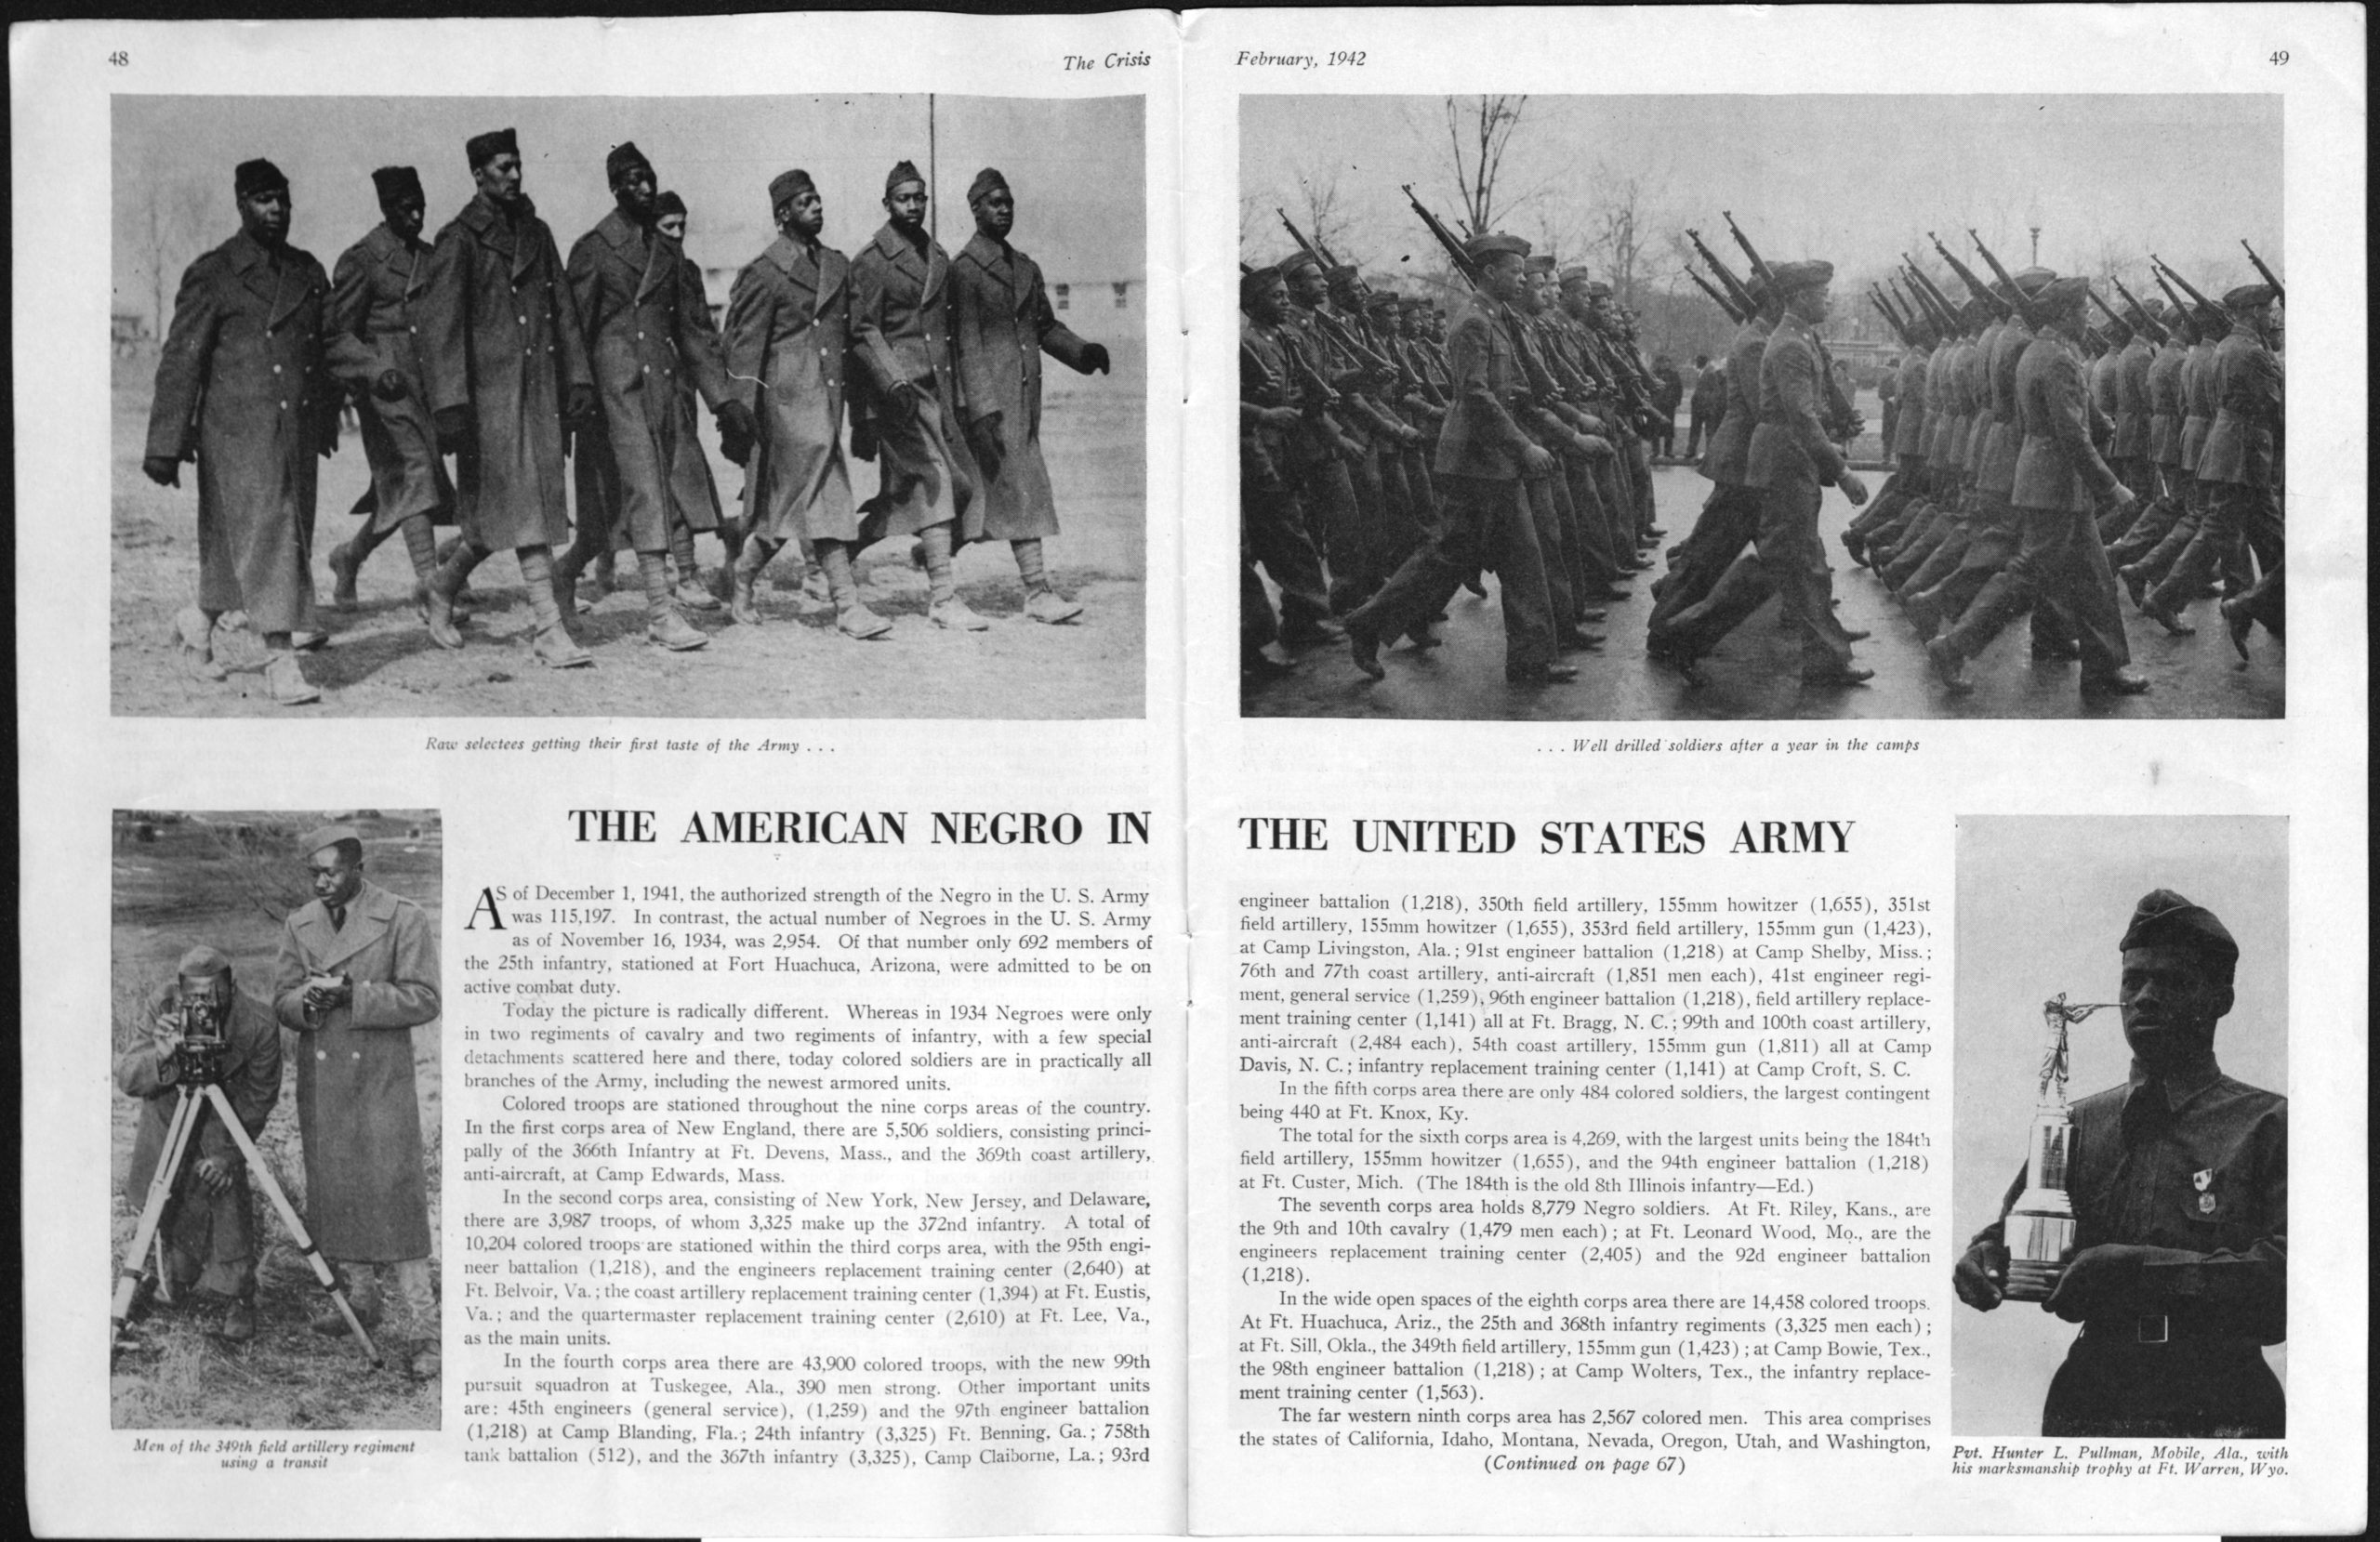 """The Crisis"", 1942, National Association for the Advancement of Colored People, 1942 February, World War II vertical file"